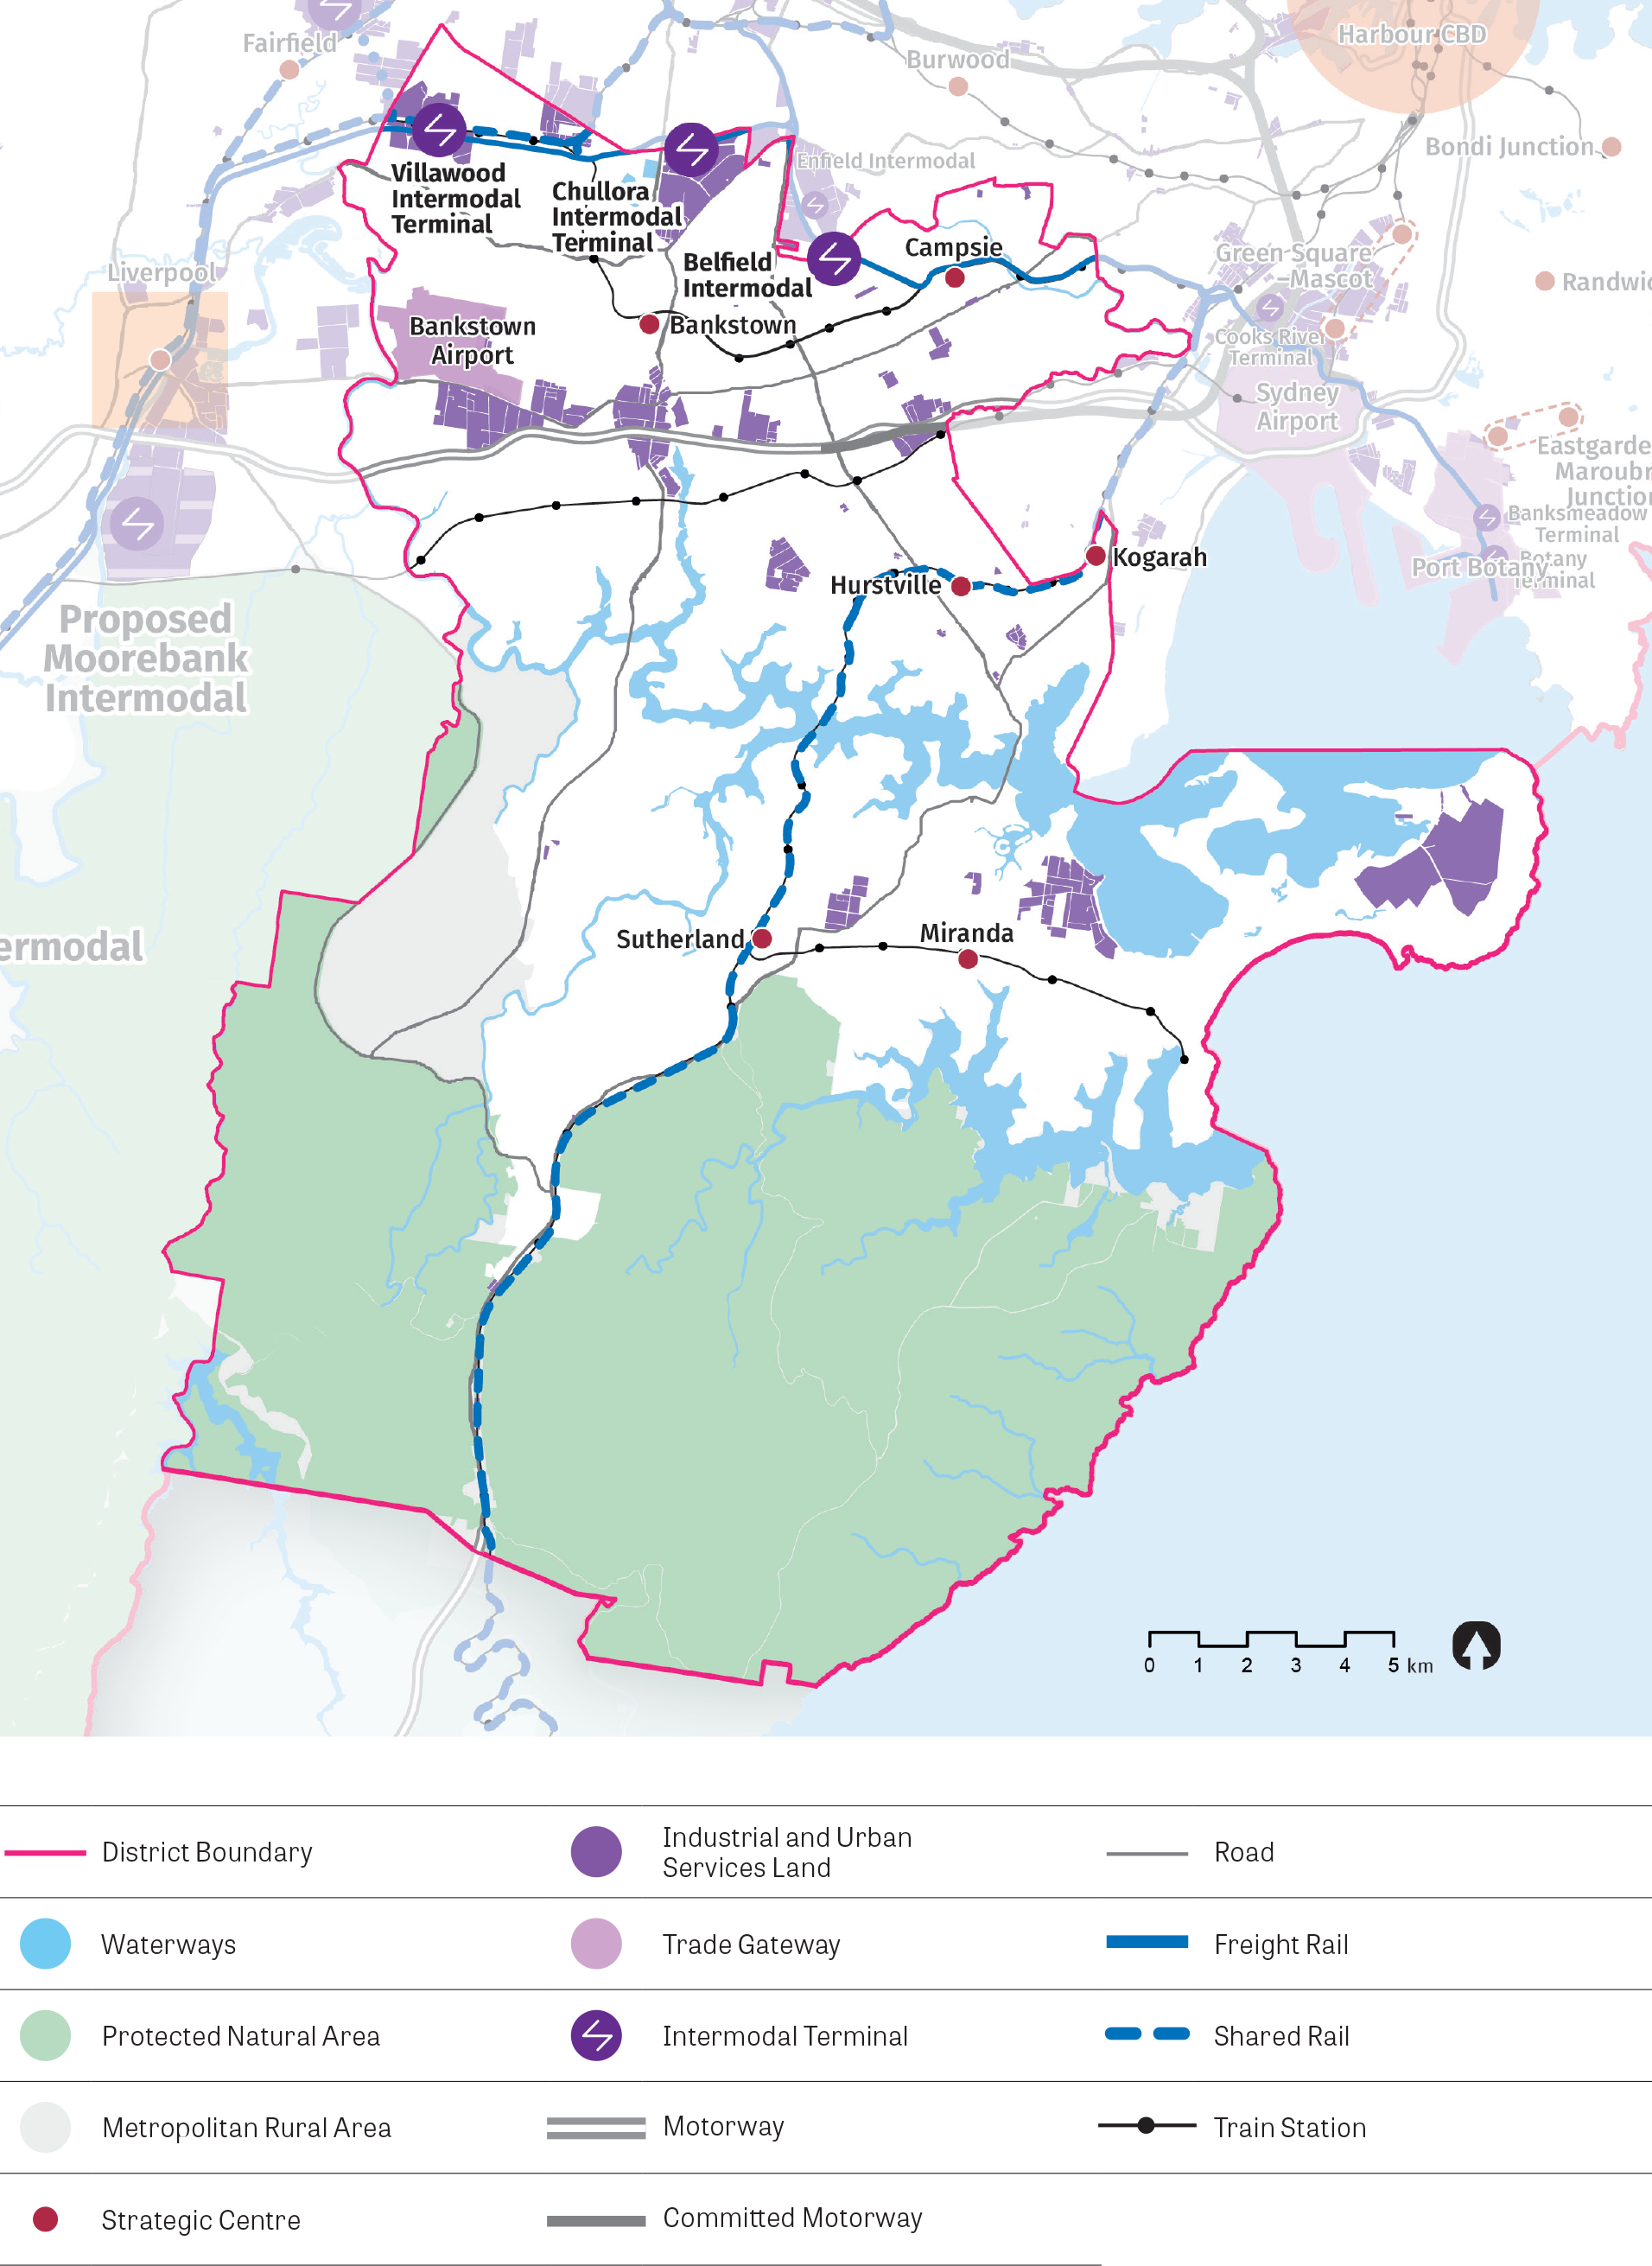 Map depicting distribution of industrial and urban services land, trade gateway and intermodal facilities. The map also shows waterways, protected natural areas, metropolitan rural areas, strategic centres, roads and freight and/or shared rail lines.